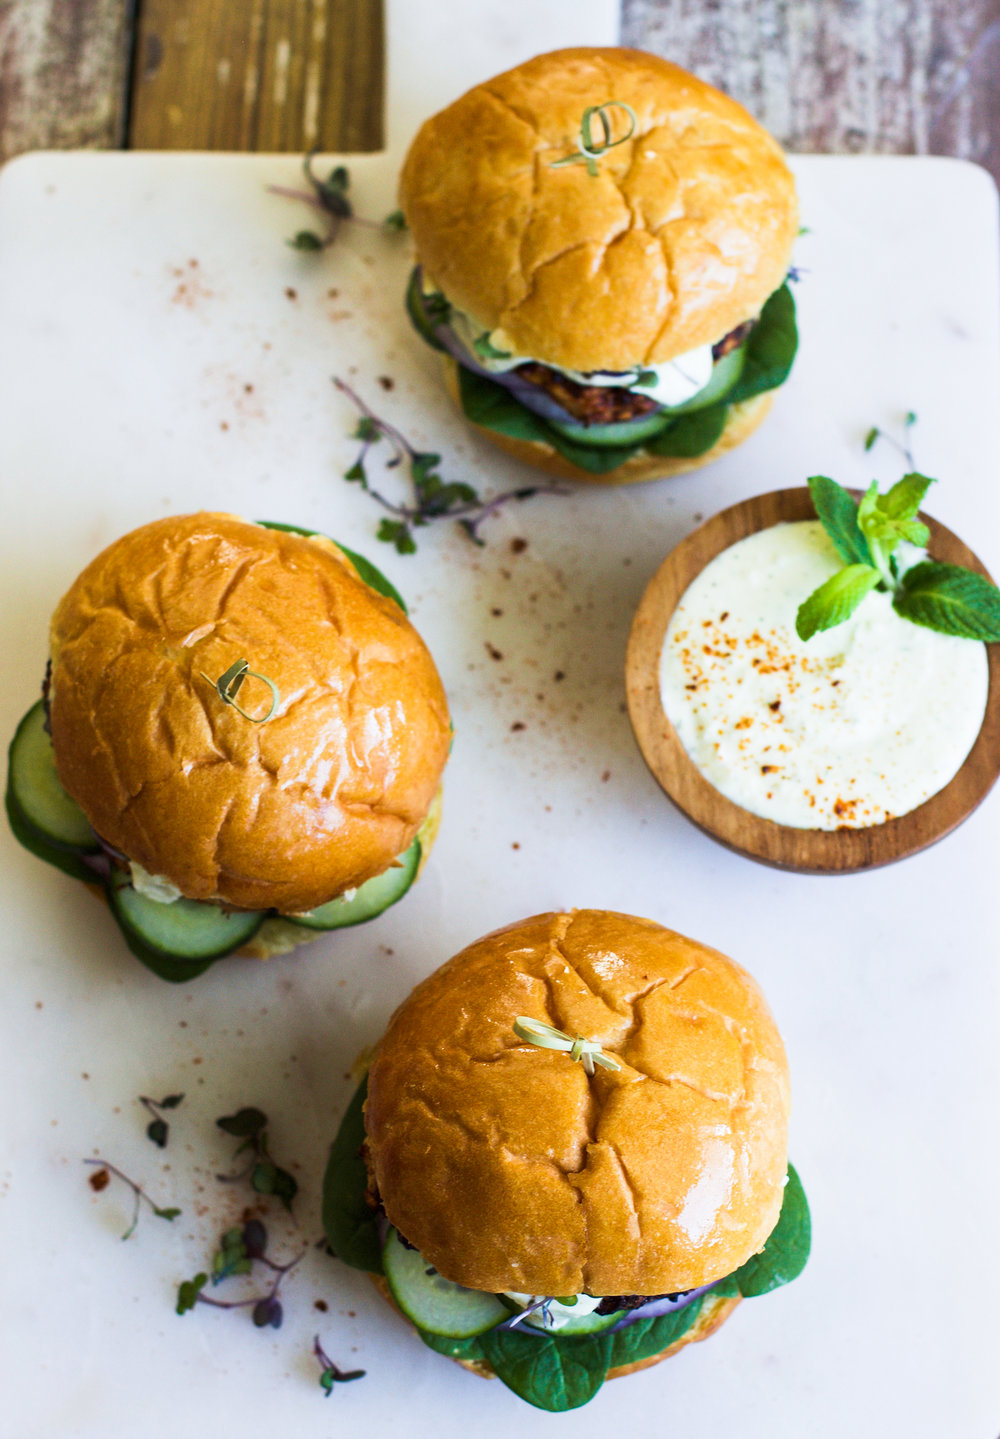 Harissa Chicken Burgers with a Citrus Mint Feta Spread: My Diary of Us